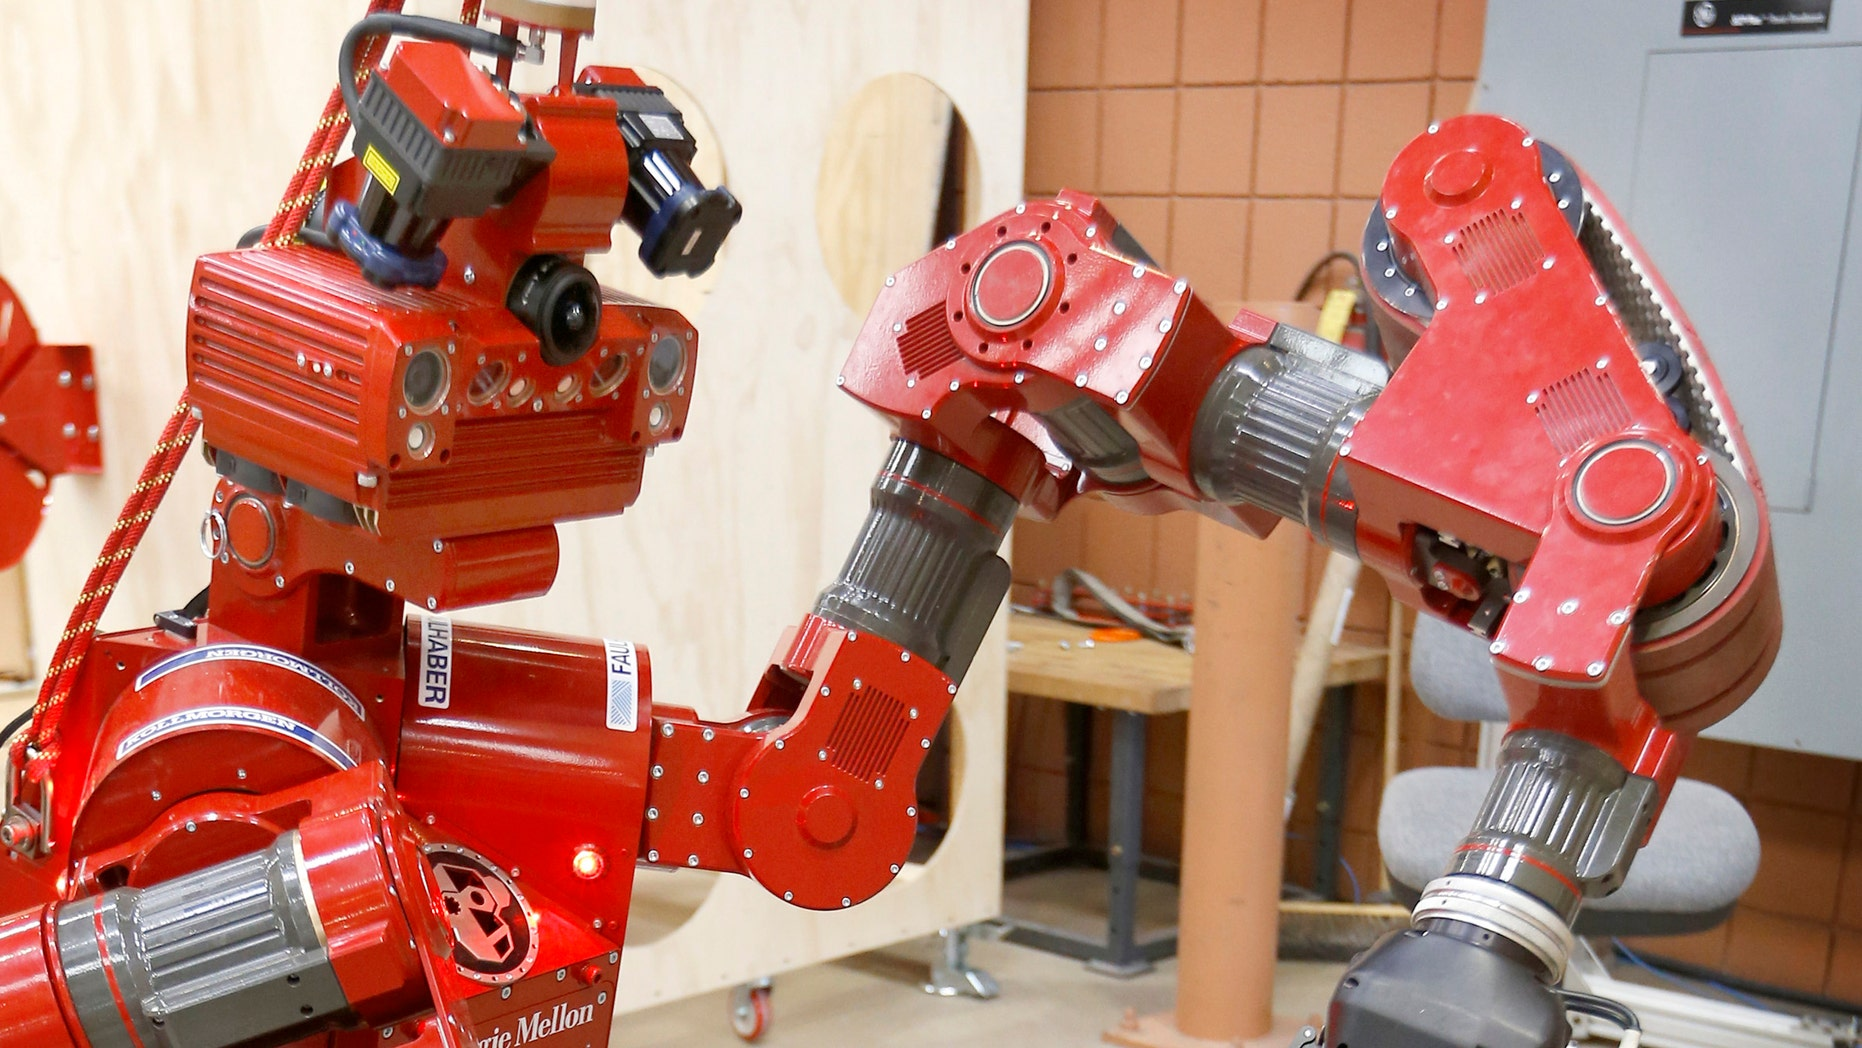 In this Wednesday, Dec. 11, 2013 photo, the CMU Highly Intelligent Mobile Platform robot, known as CHIMP, (CMU Highly Intelligent Mobile Platform) is put through some paces as it is switching the hold of a fire hose from one grasping unit to another at the National Robotics Engineering Center in Pittsburgh. Carnegie Mellon researchers are testing the new search-and-rescue robot that will compete in the U.S. Defense Department's upcoming national robotics competition in Florida. Competitors from other schools and companies will be vying for a $2 million U.S. Defense Department prize. (AP Photo/Keith Srakocic)